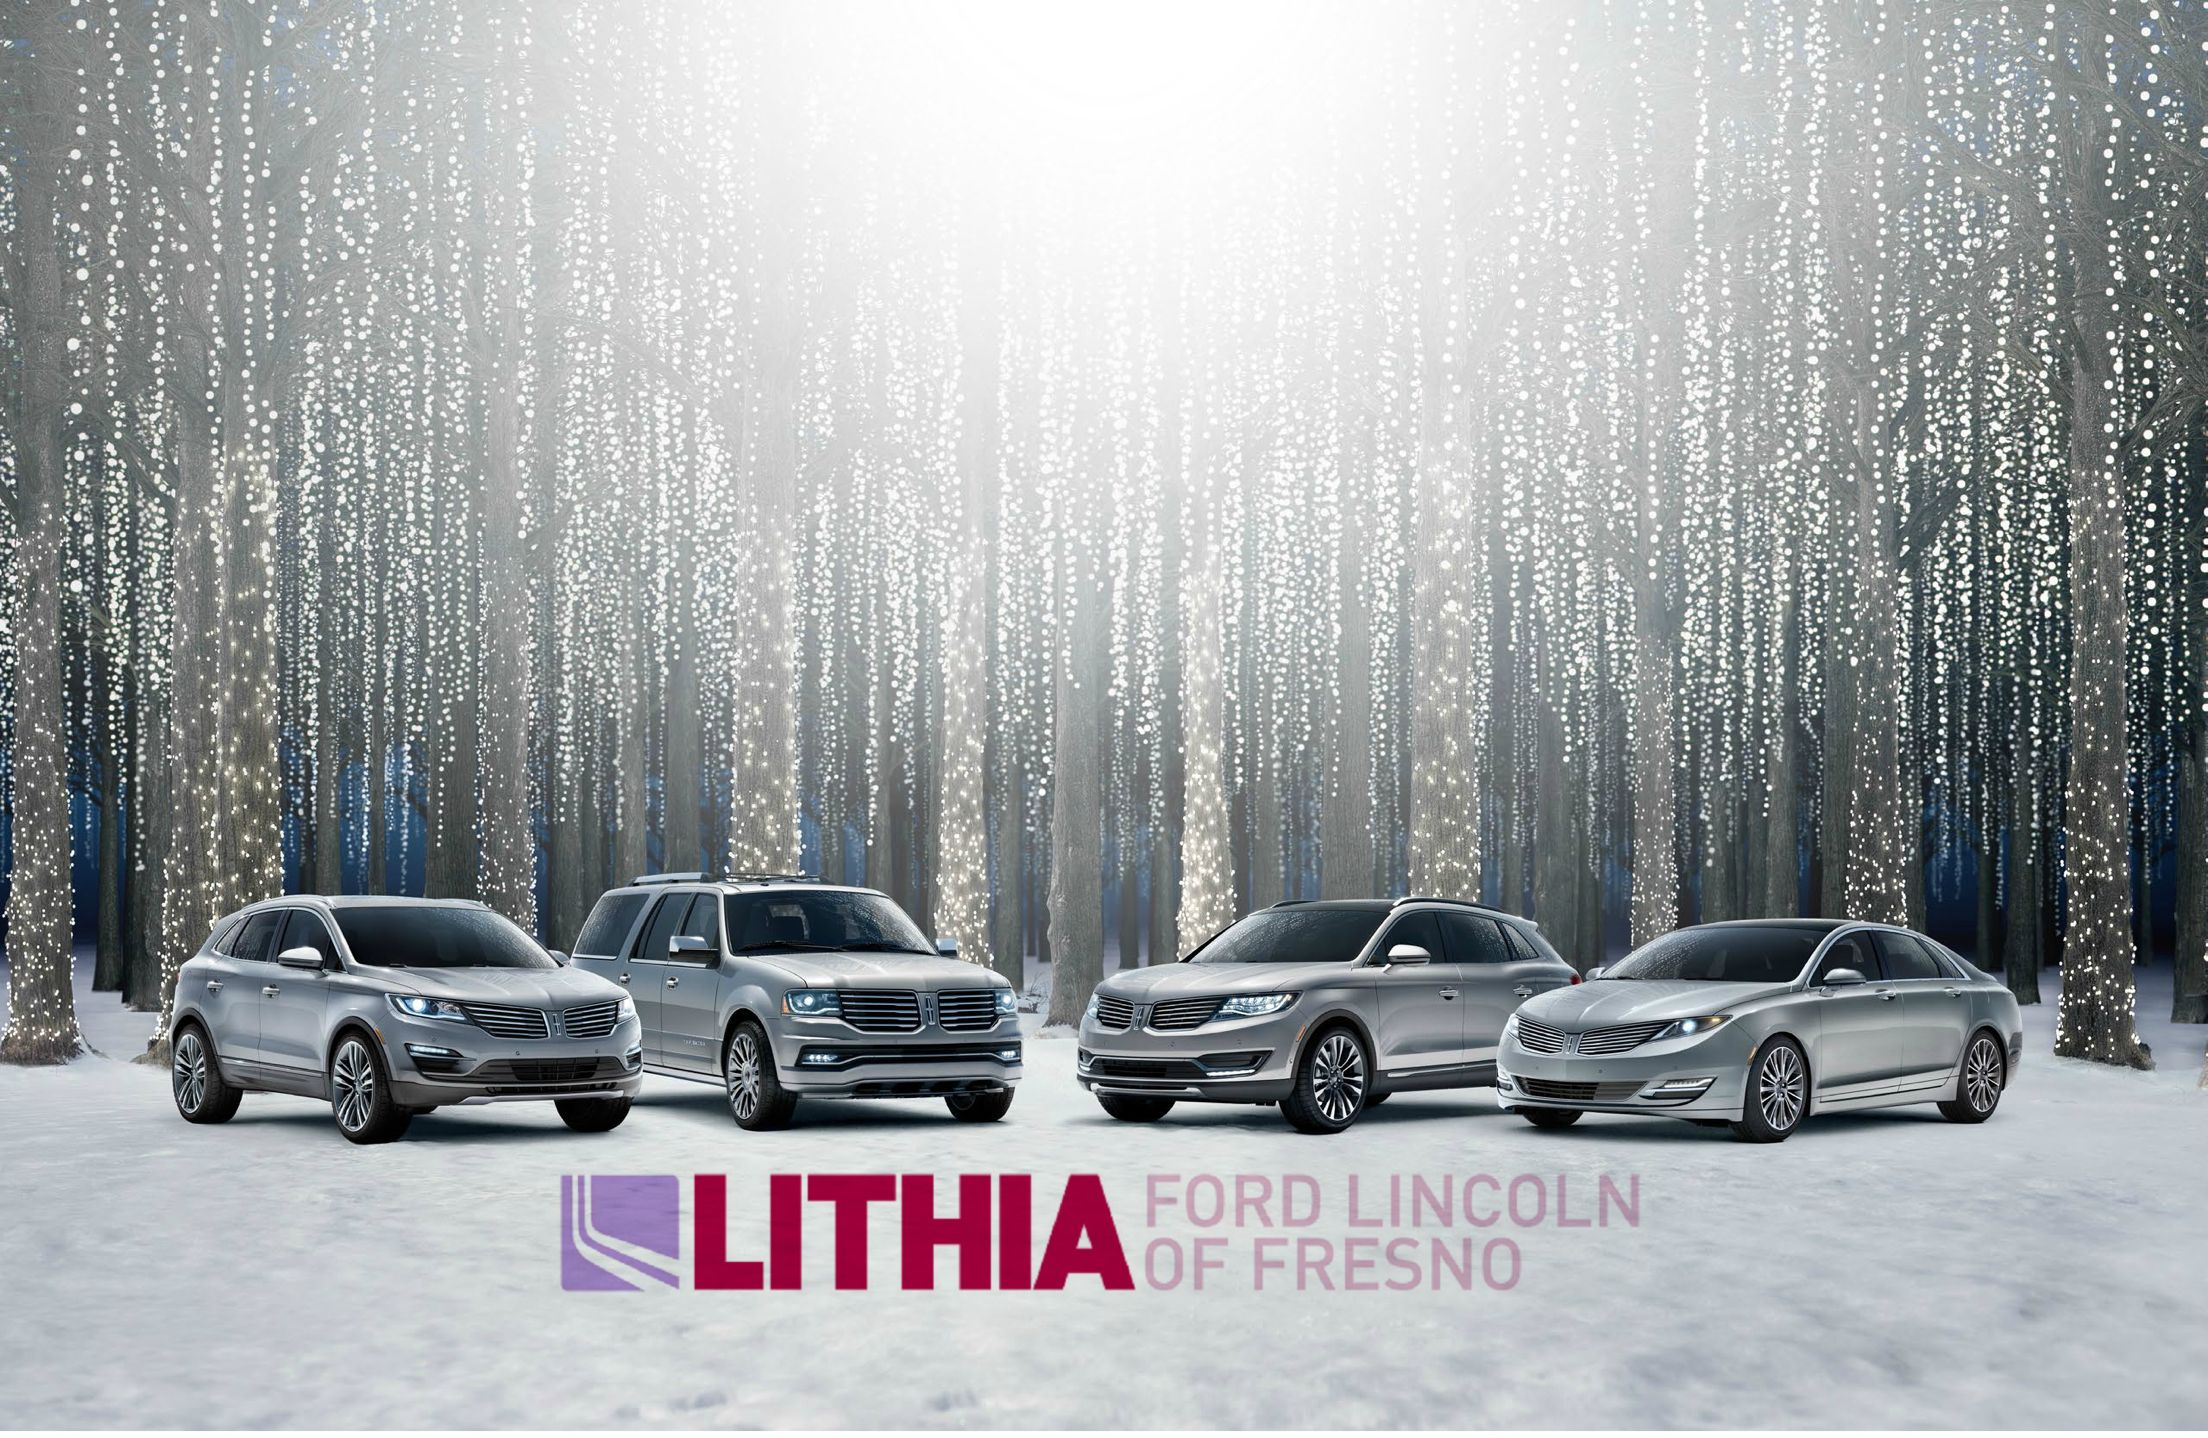 Lithia Ford Lincoln of Fresno Lincoln